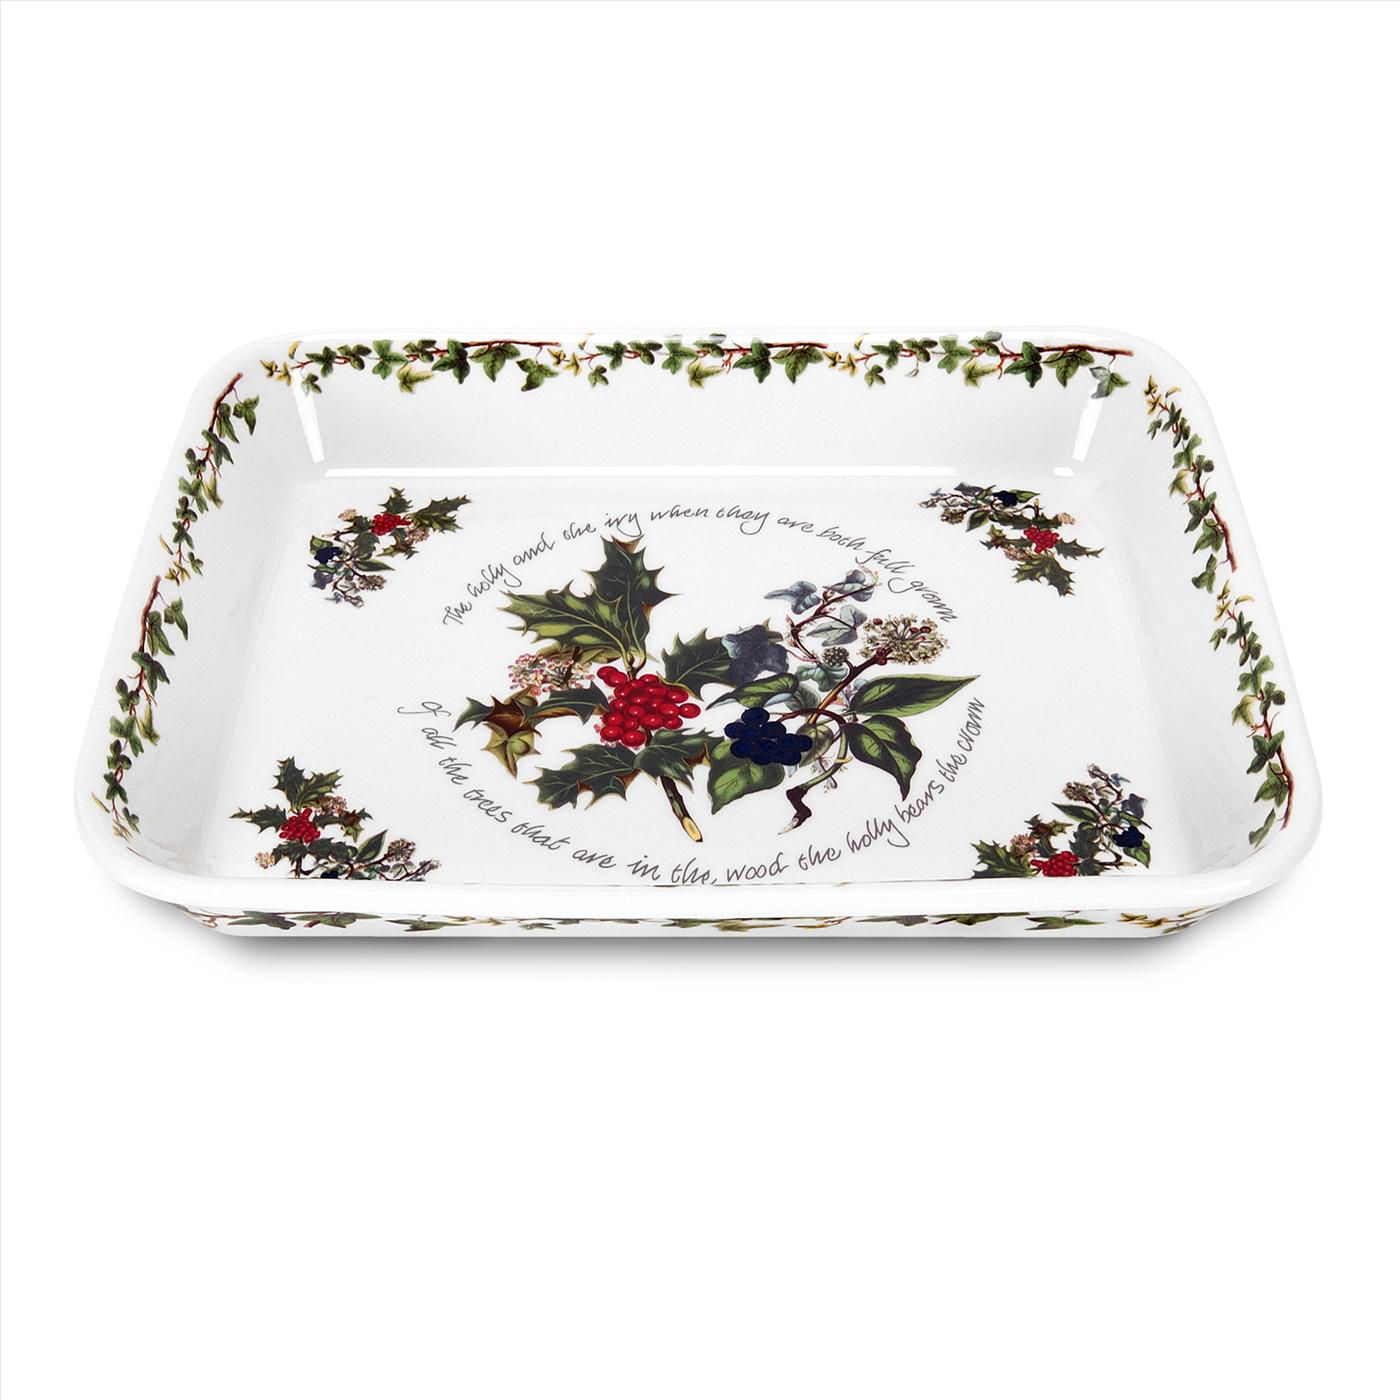 Portmeirion The Holly and The Ivy Lasagne Dish image number 0